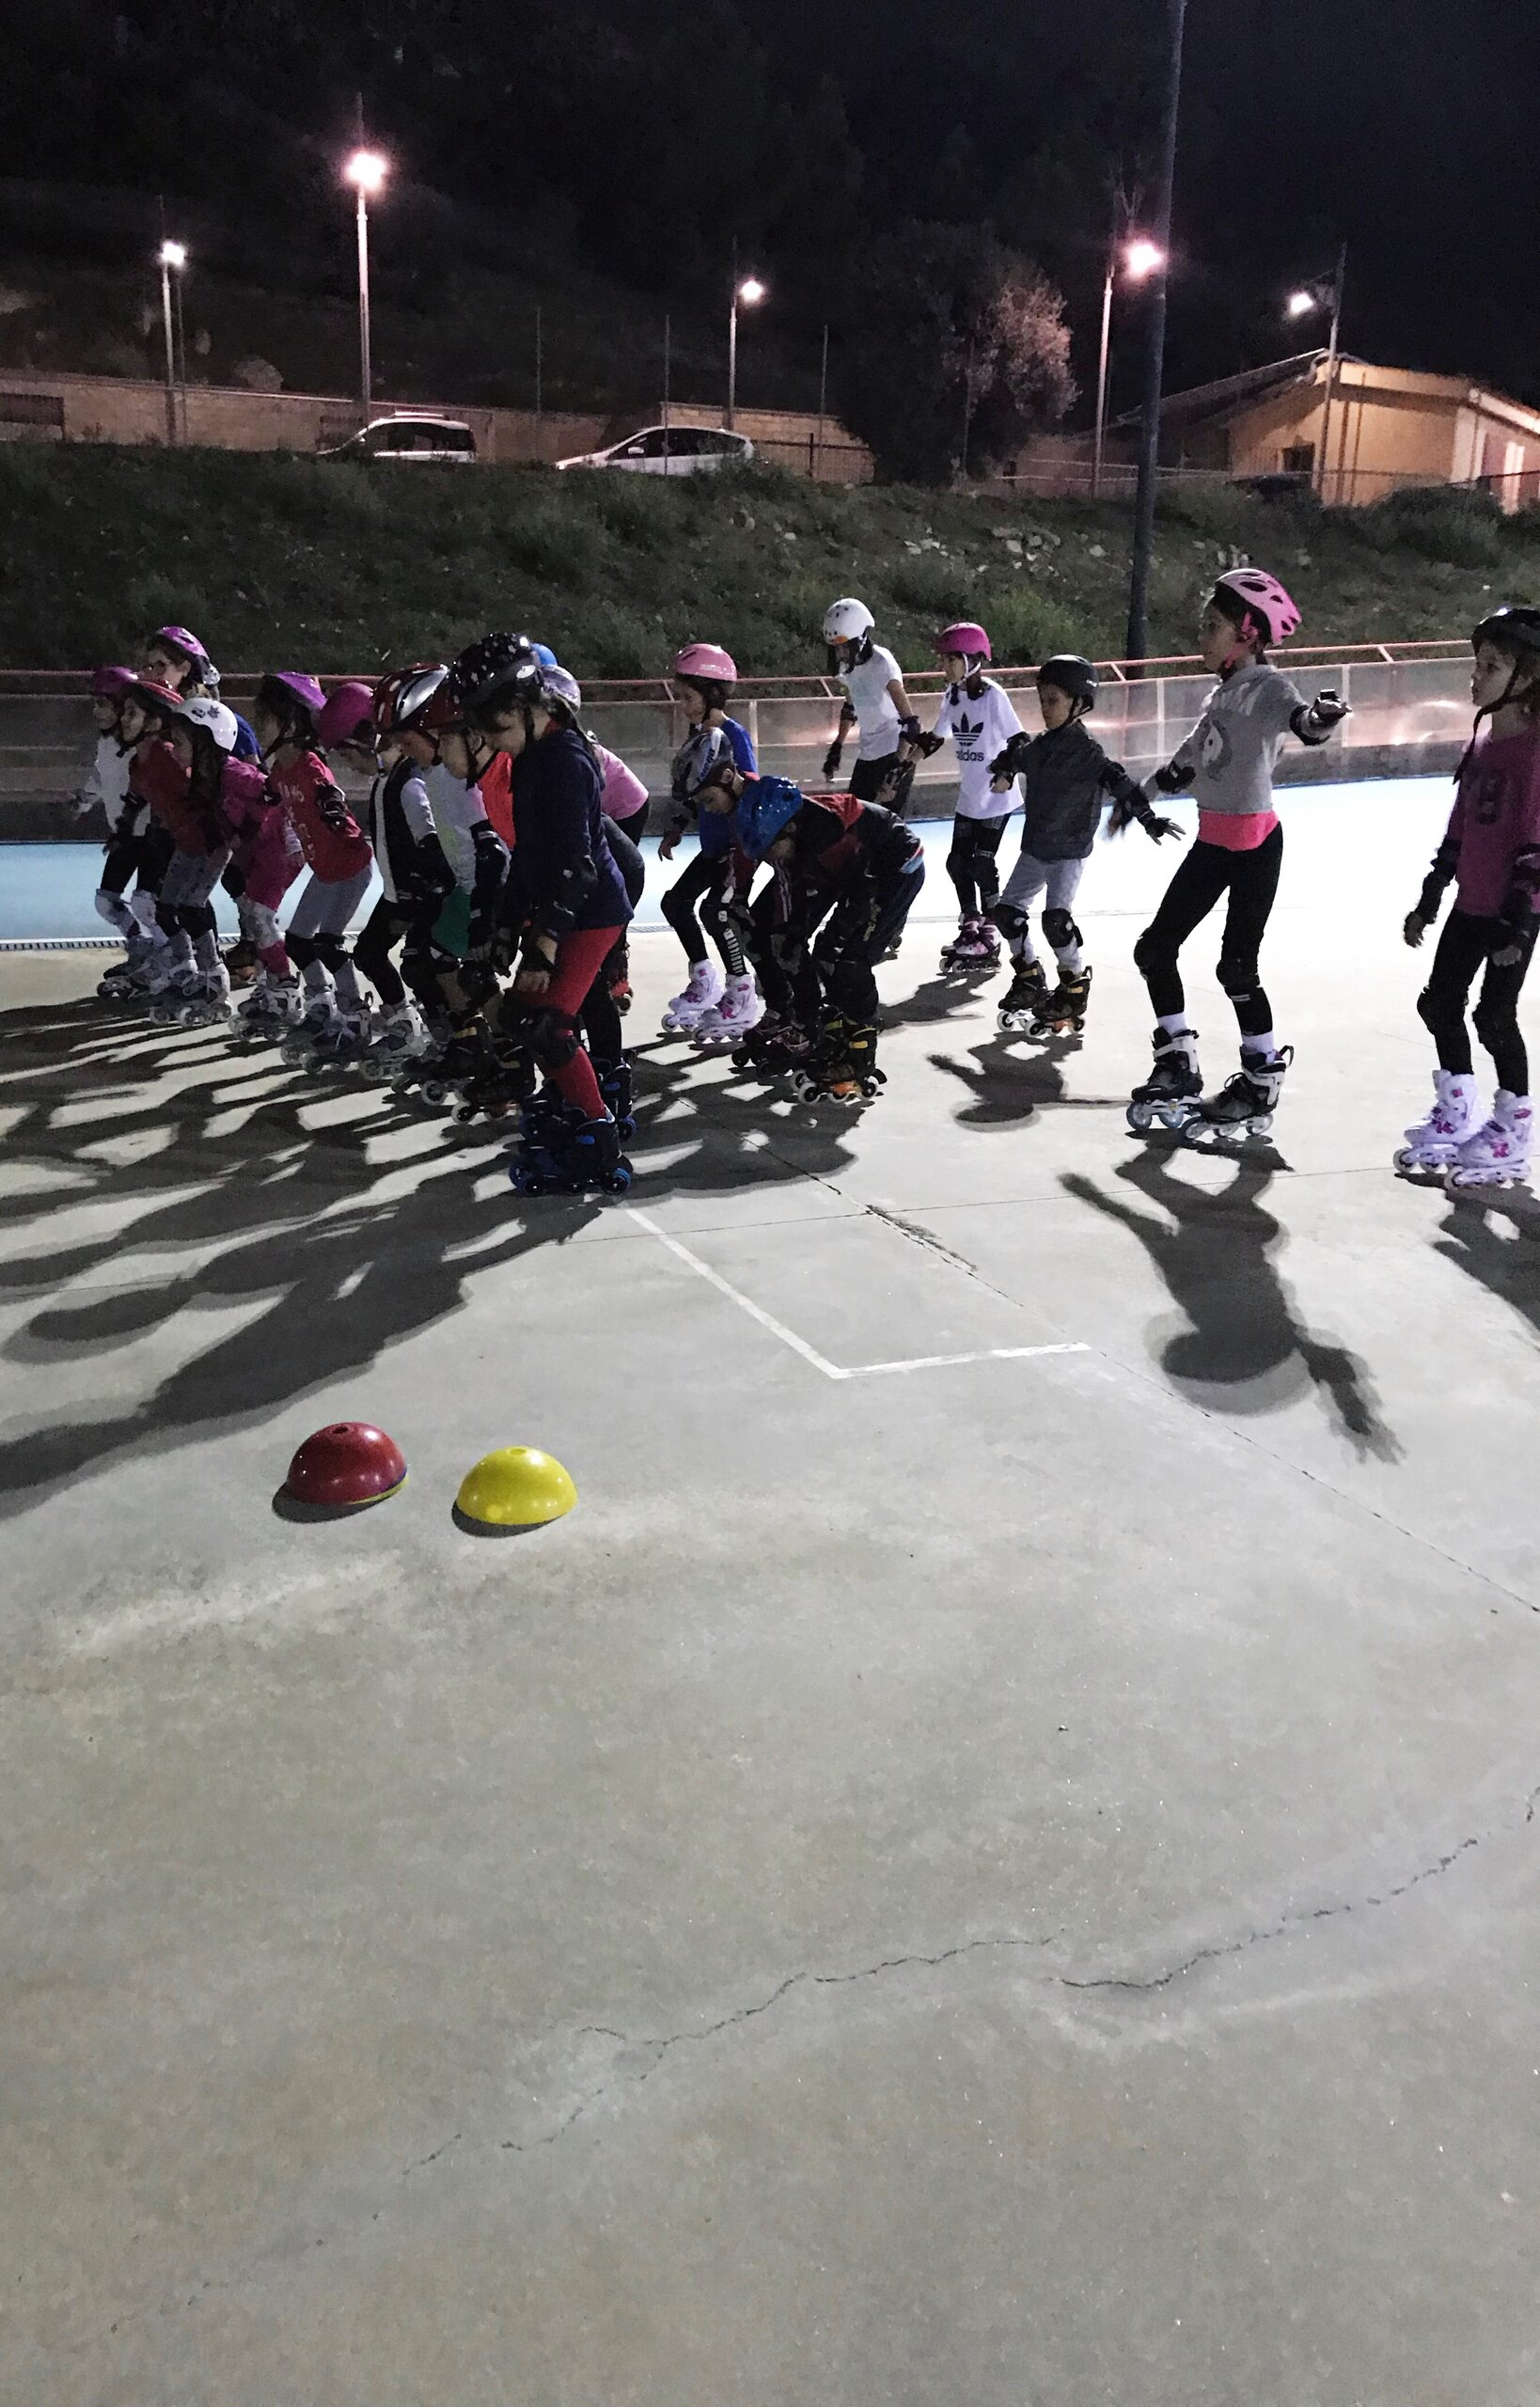 INLINE FIT SKATING CORSI DI PATTINAGGIO IN LINEA